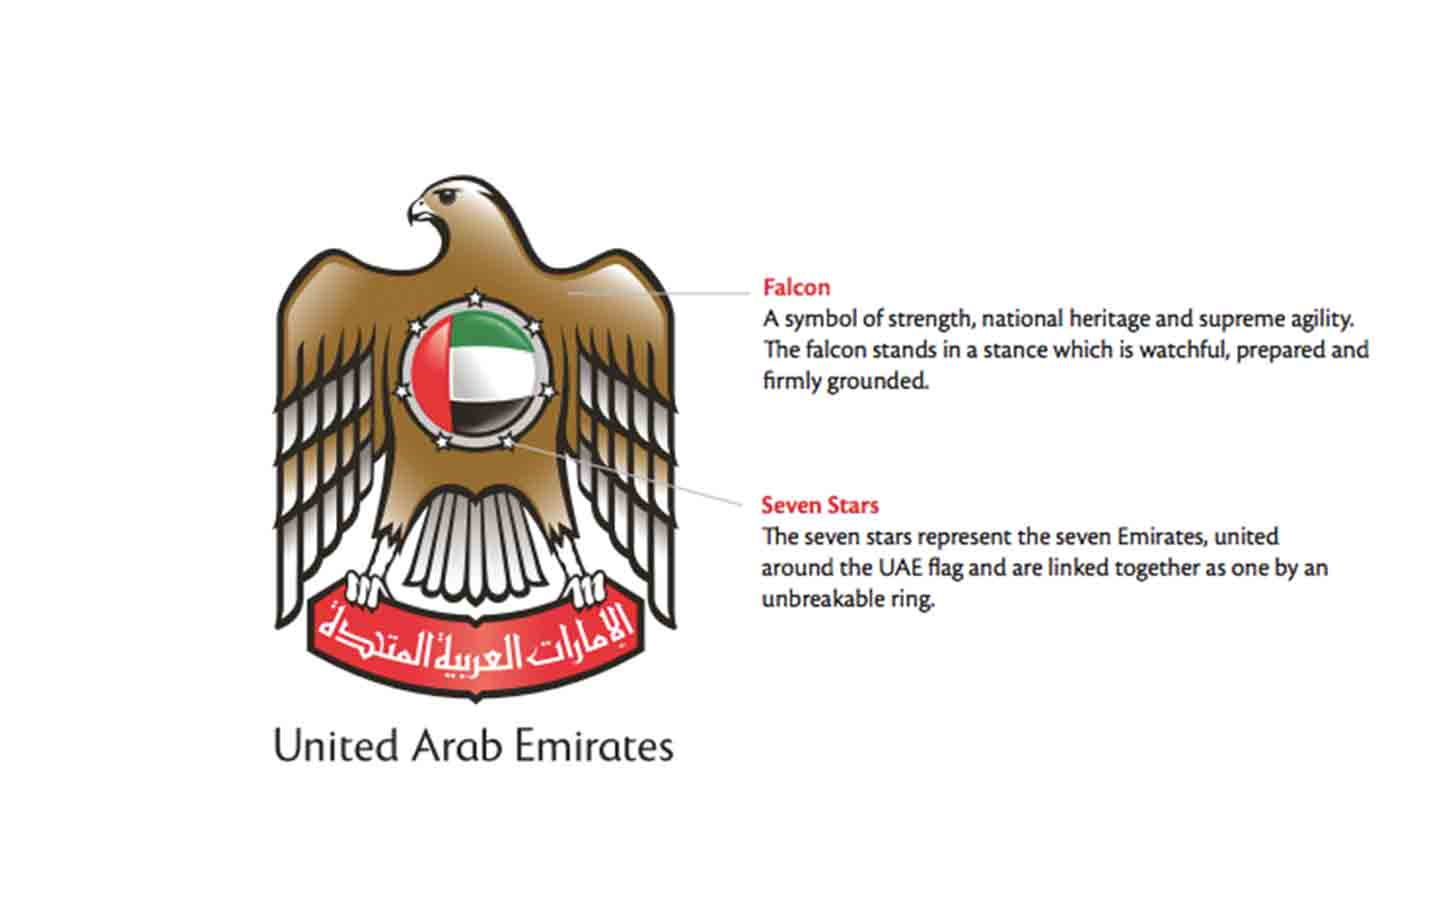 official federal emblem of the UAE